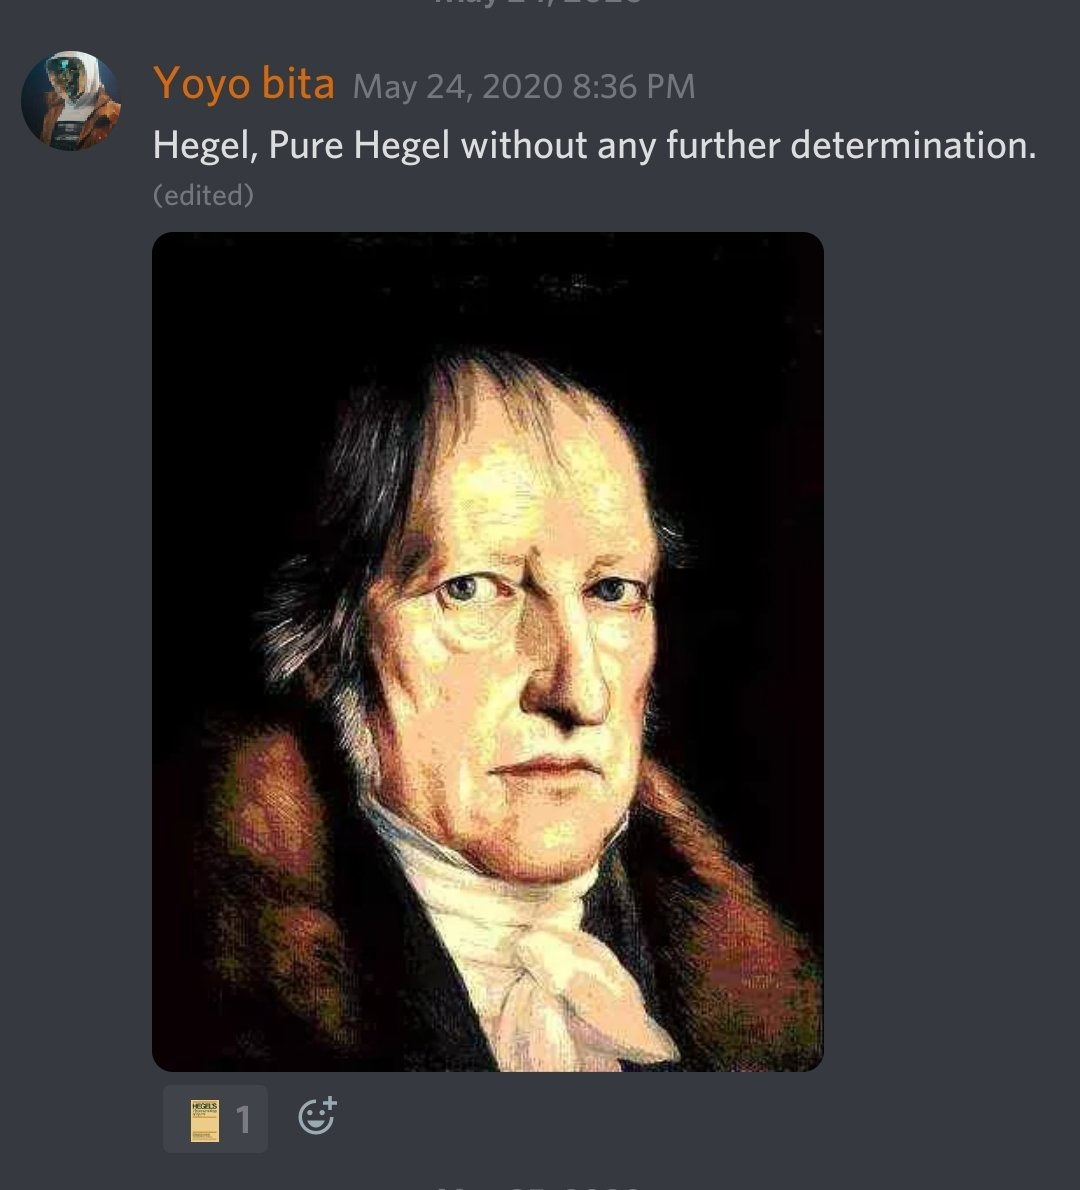 We all need a dose of Hegel in this perilous time. #Hegel #Absolute #spirit pic.twitter.com/9JX8UuzPpe